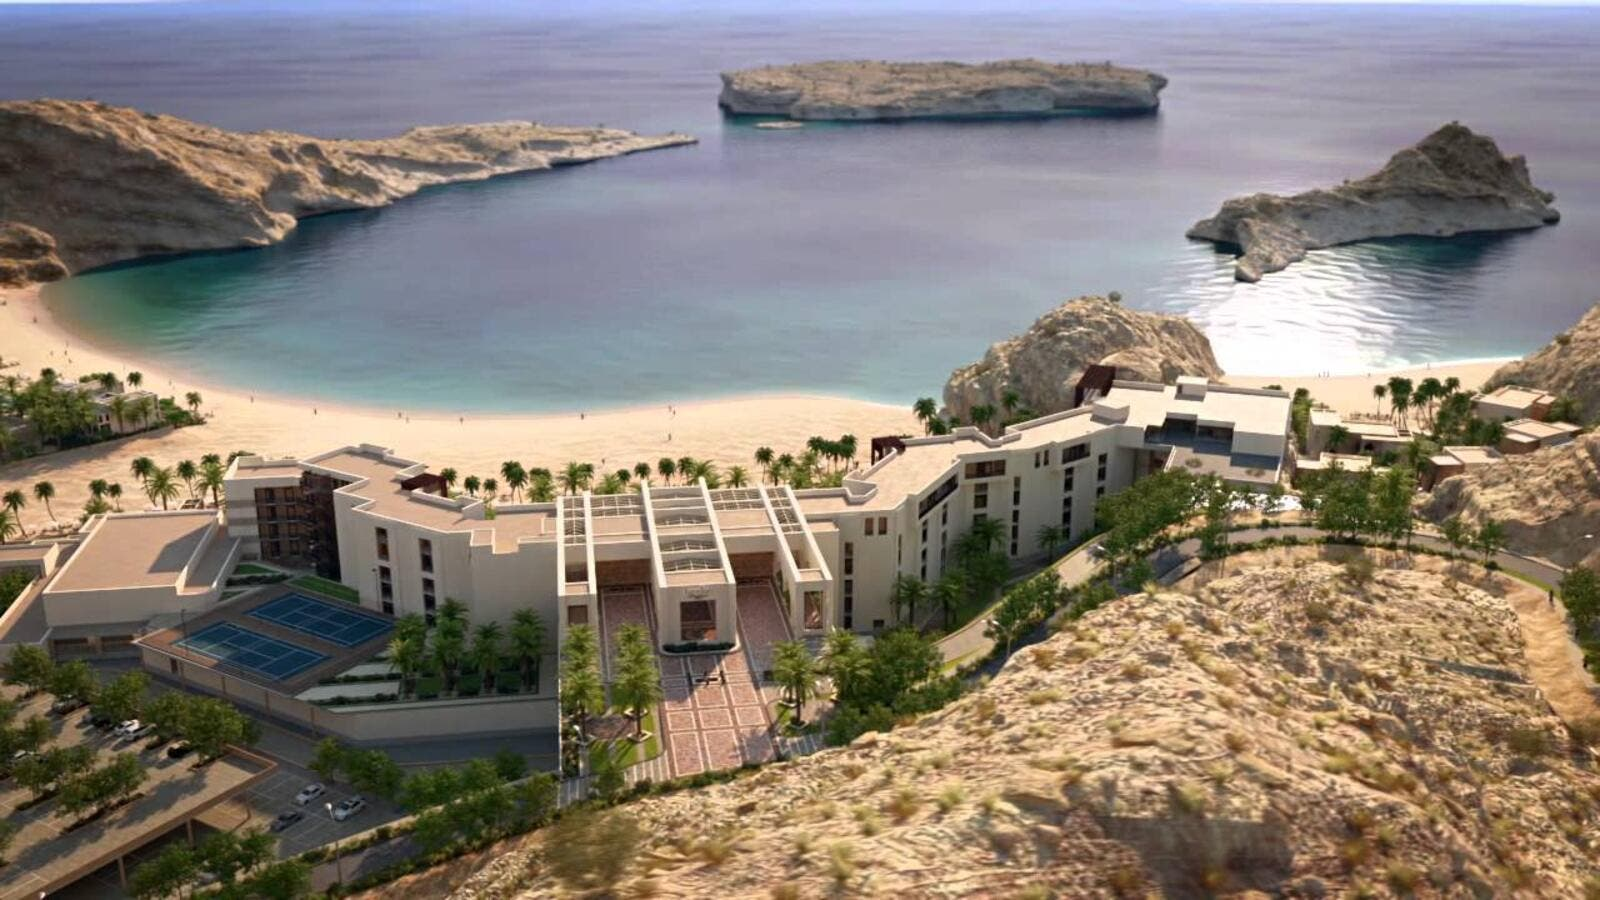 The Oman Saraya Bandar Jissar Hotel (File photo)